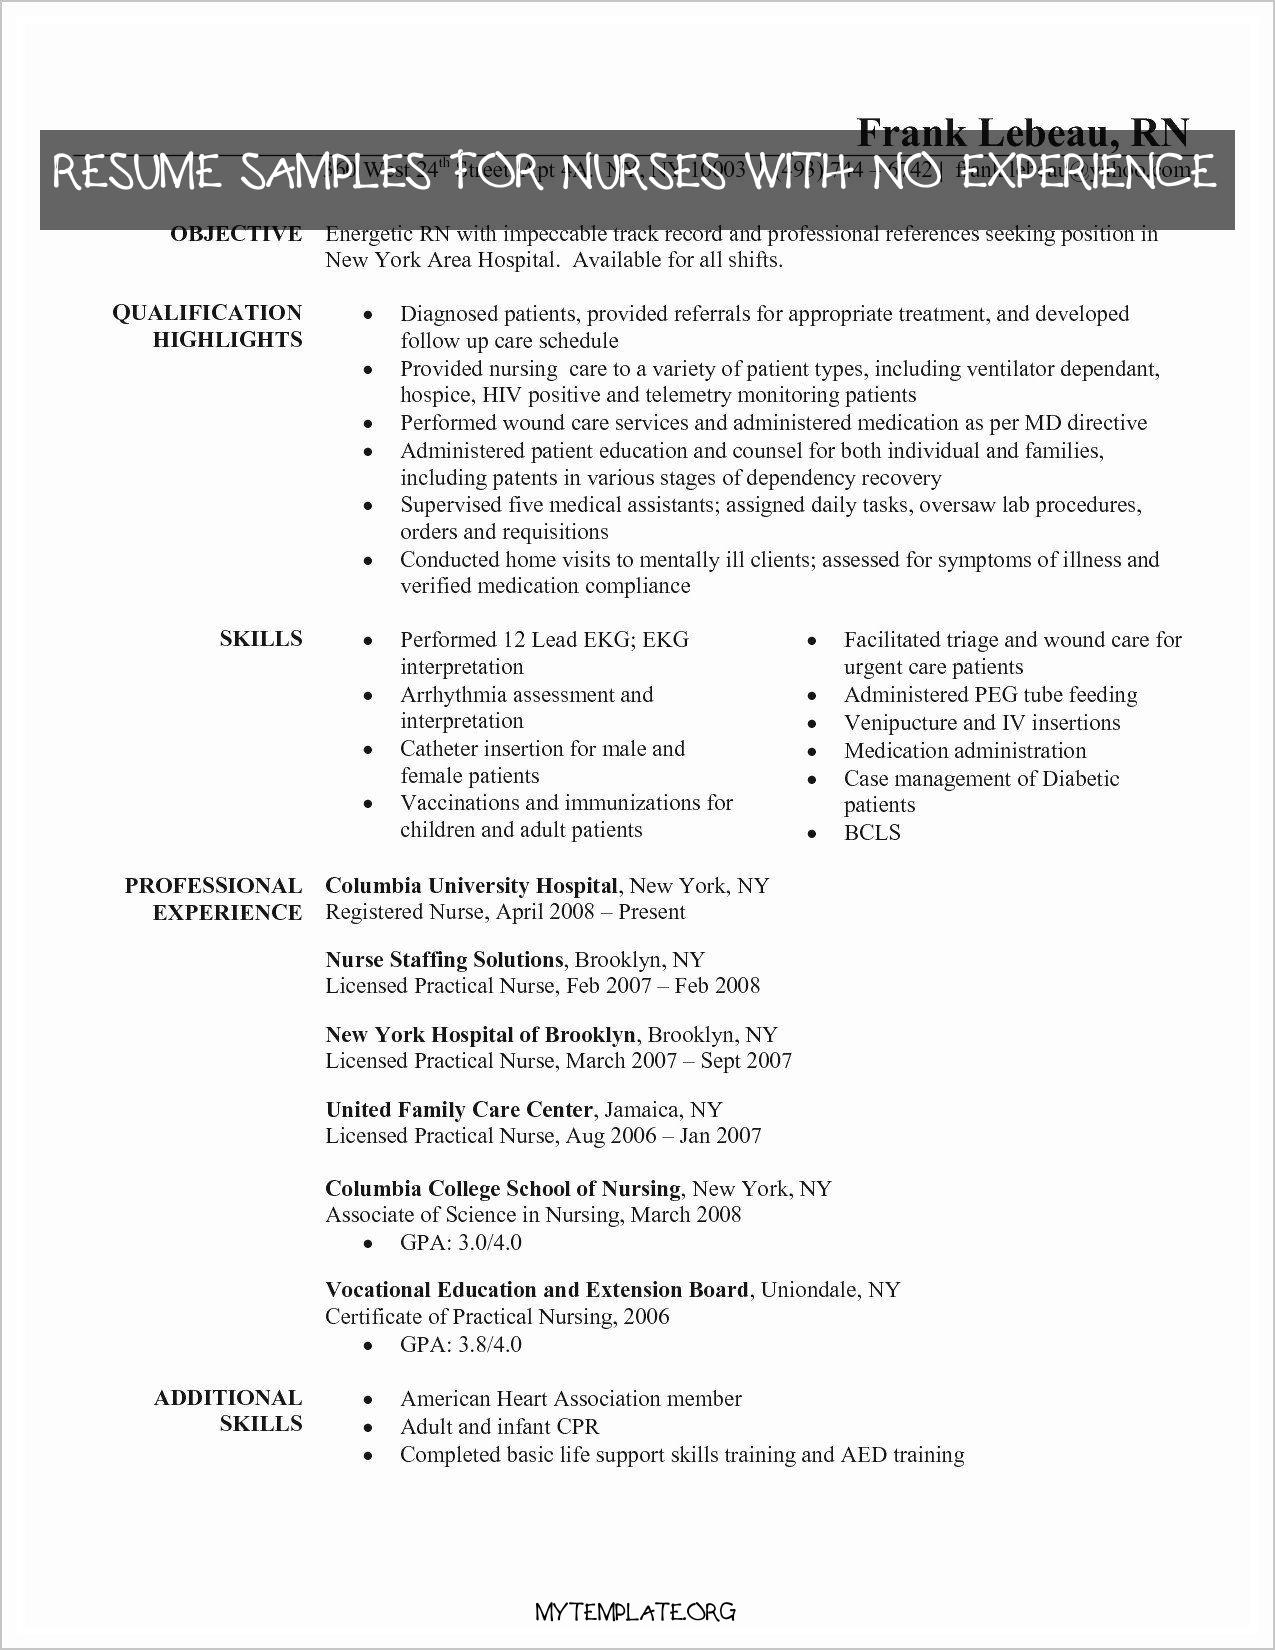 10 Resume Samples For Nurses With No Experience Free Templates